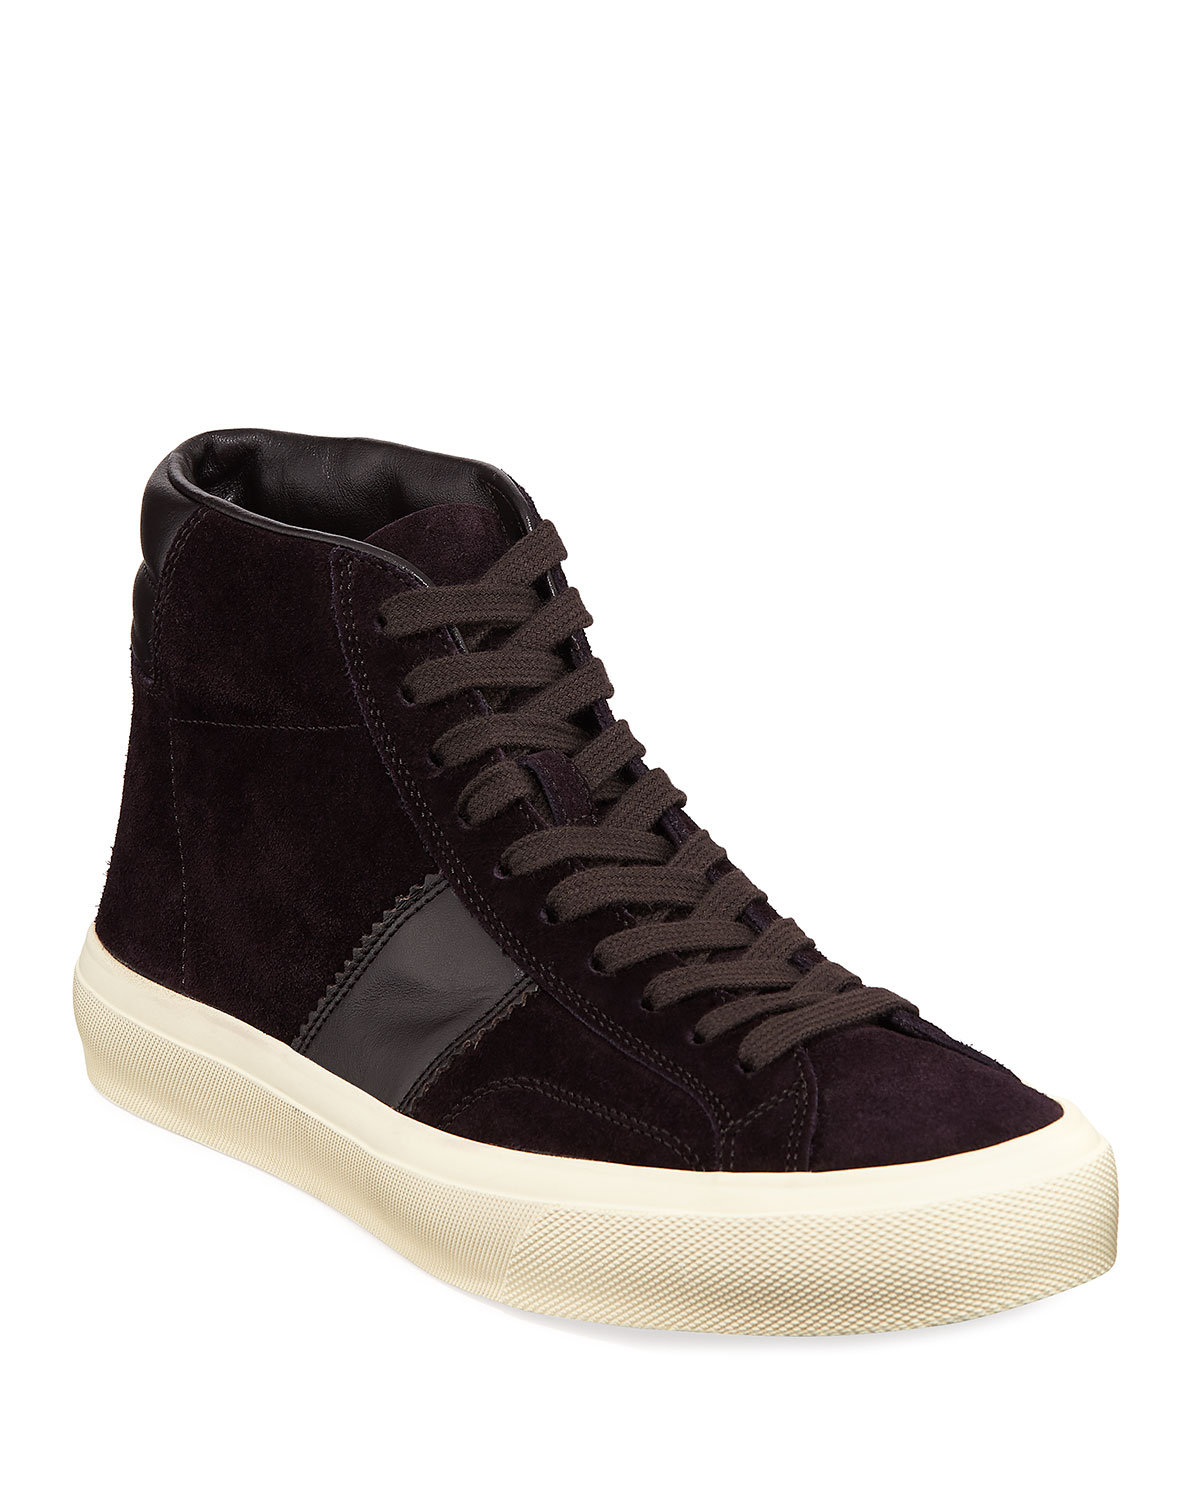 TOM FORD Men's Cambridge Suede High-Top Sneakers